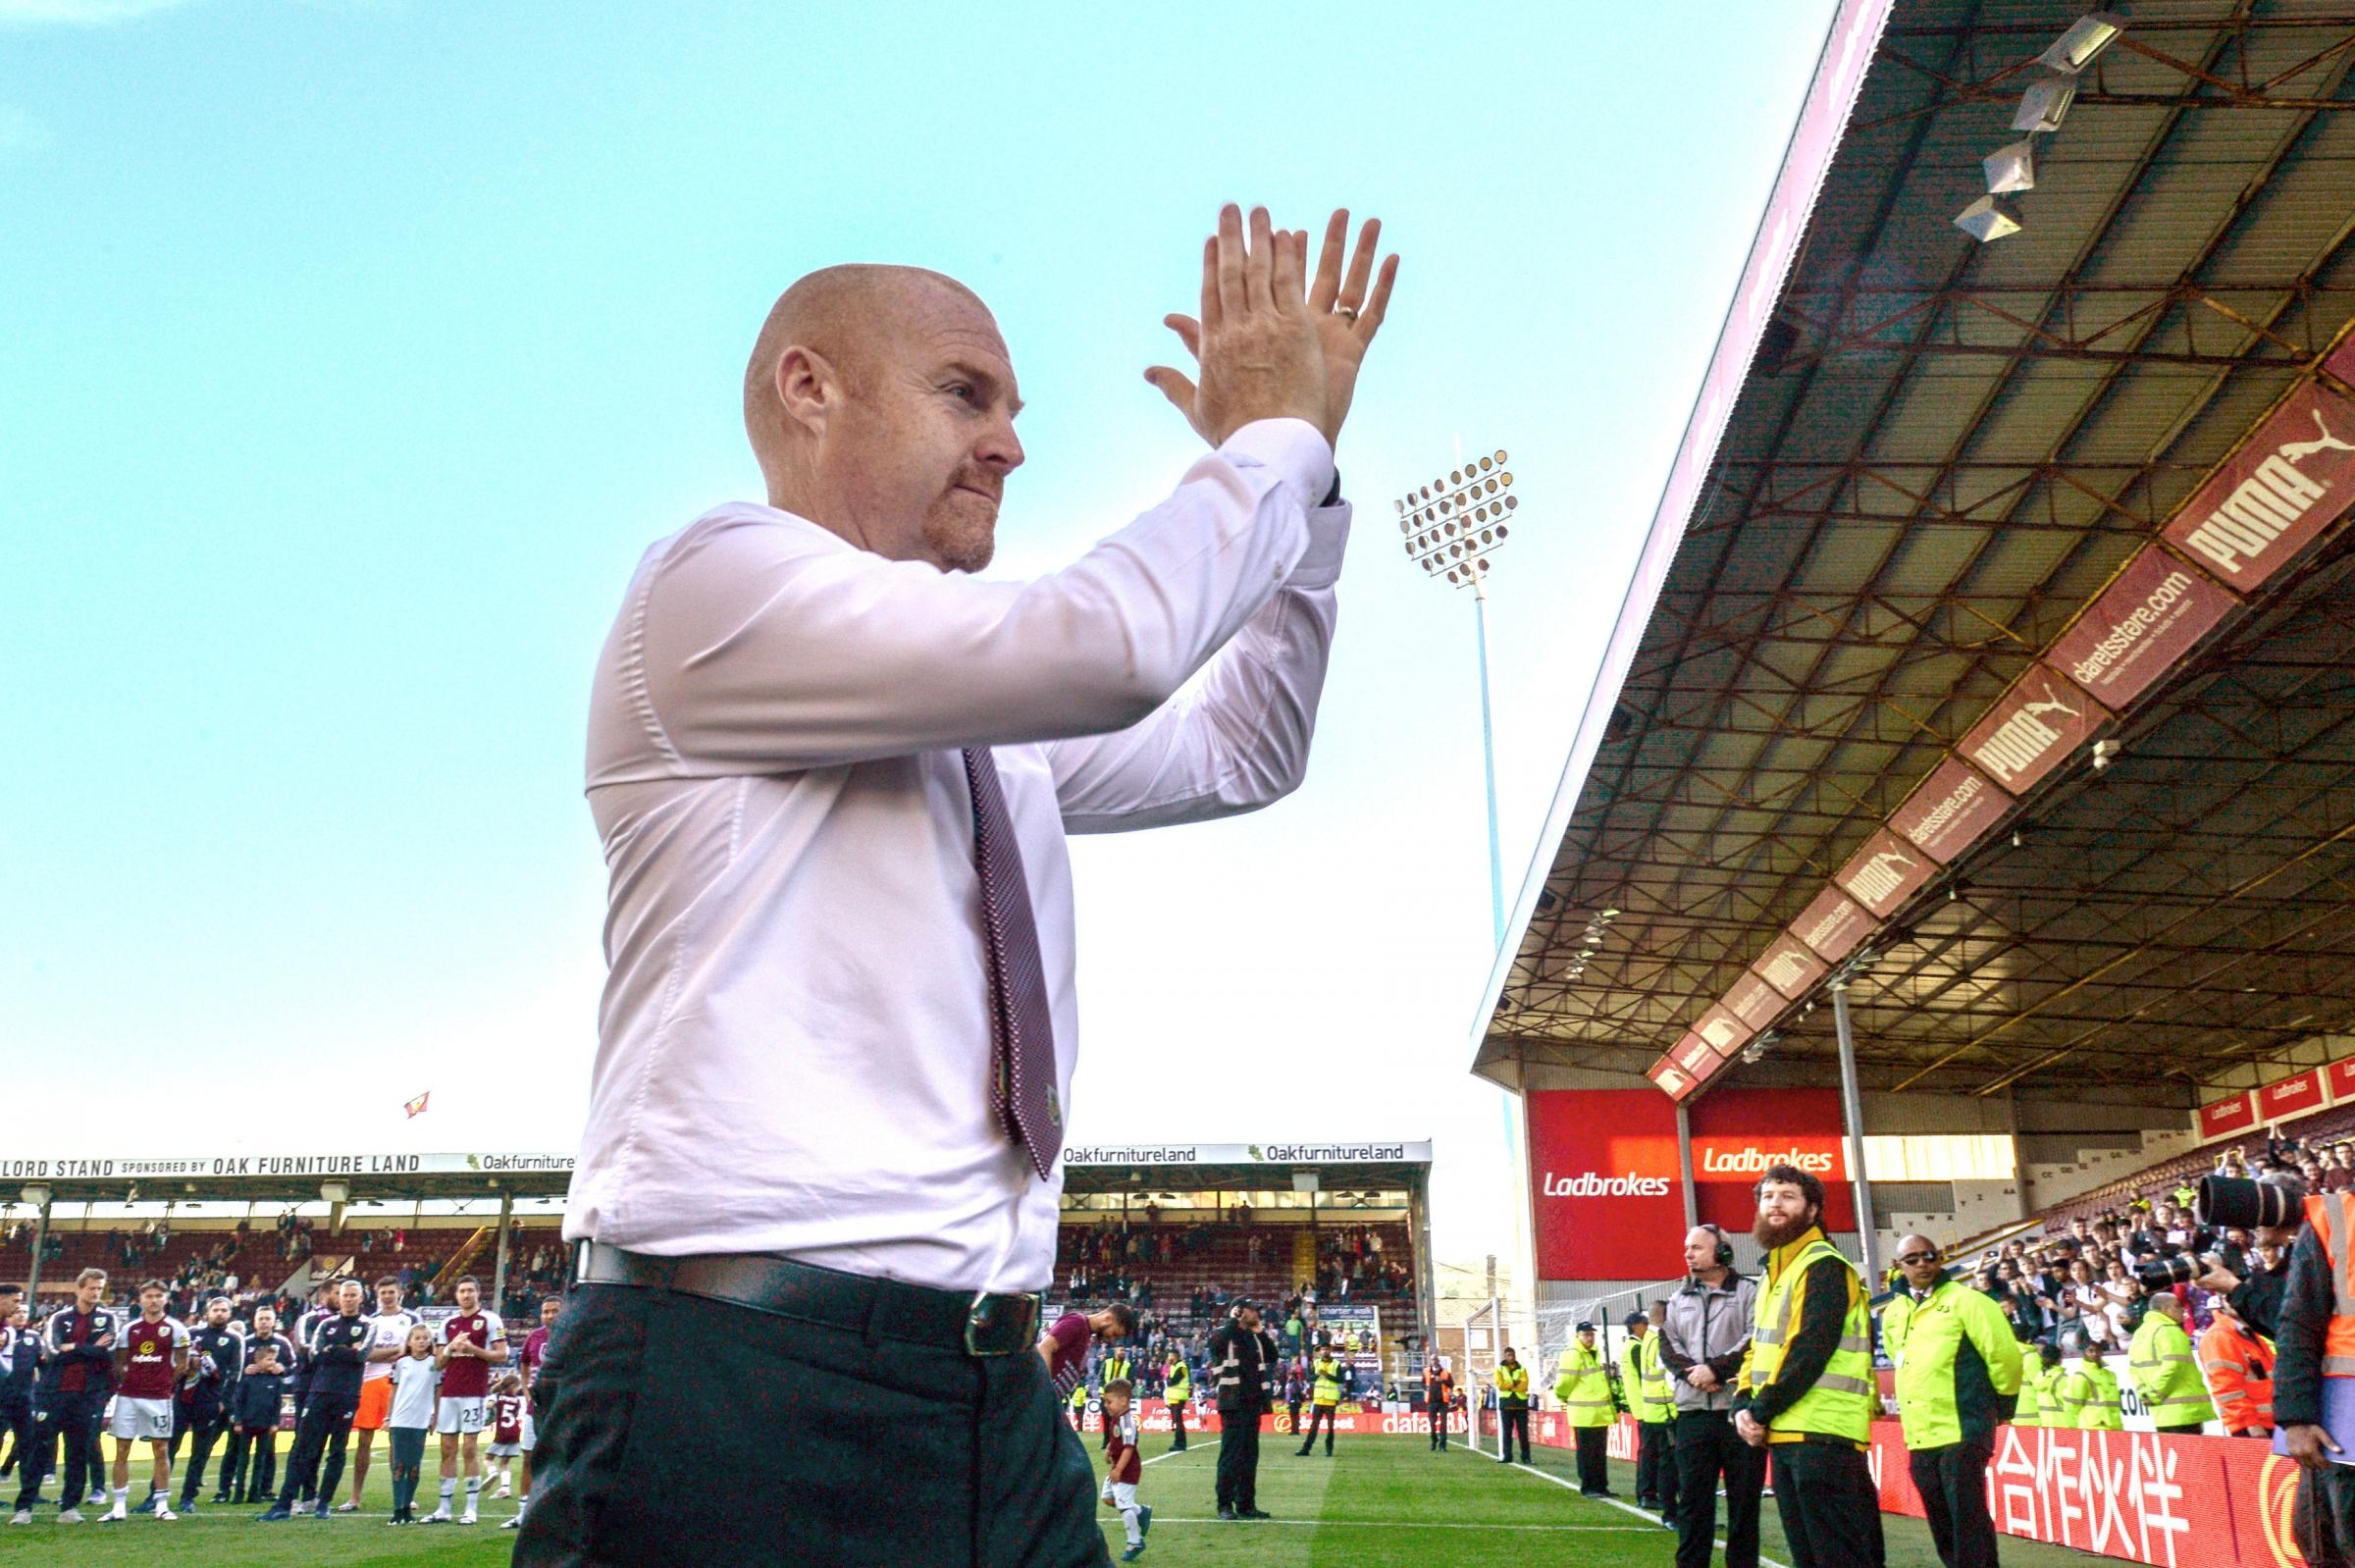 Sean Dyche has taken Burnley back into Europe for the first time in 51 years